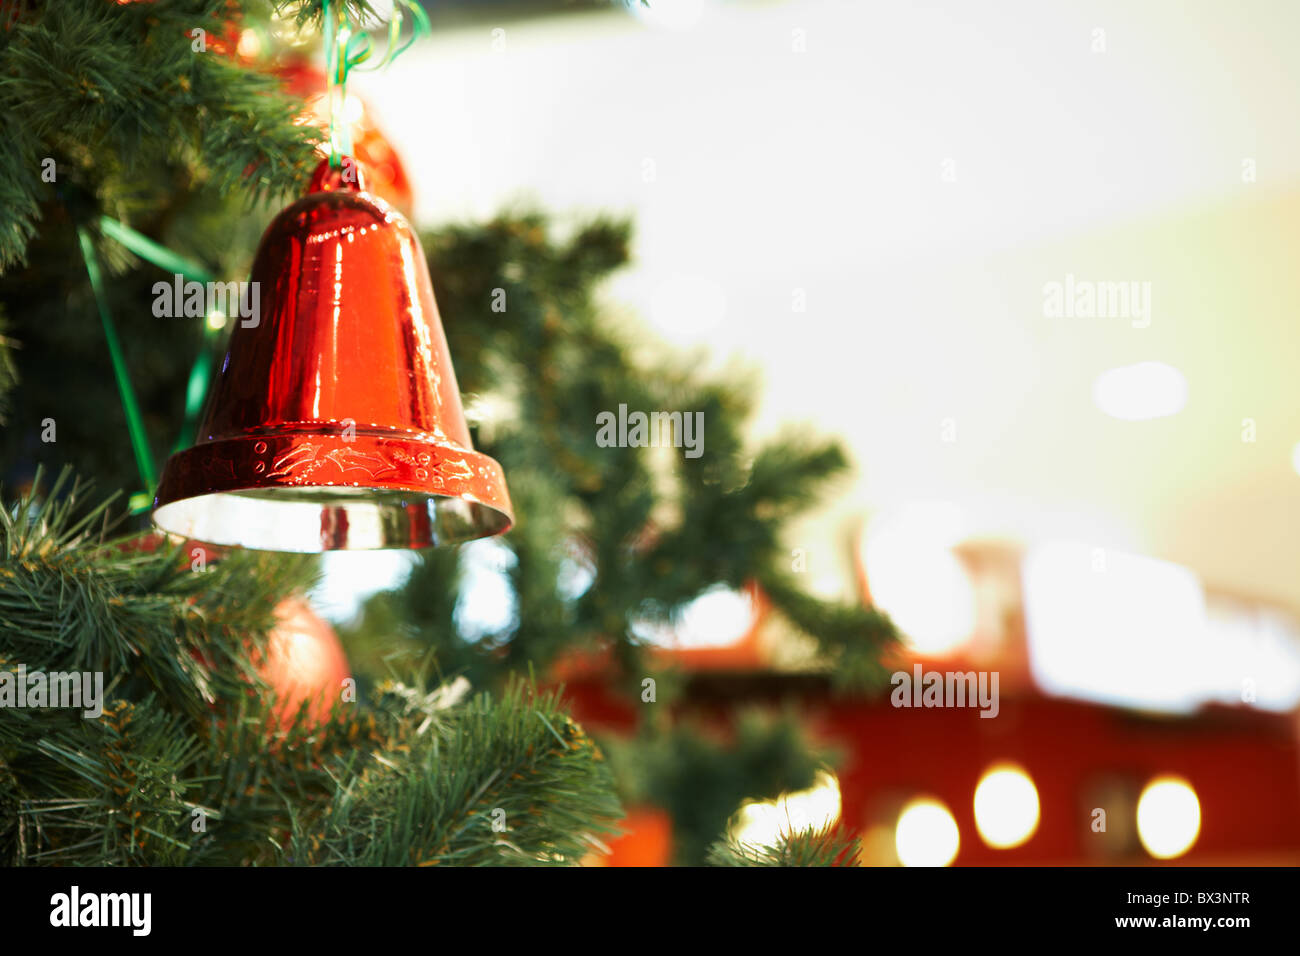 Close-up of red toy bell hanging on green spruce branch - Stock Image